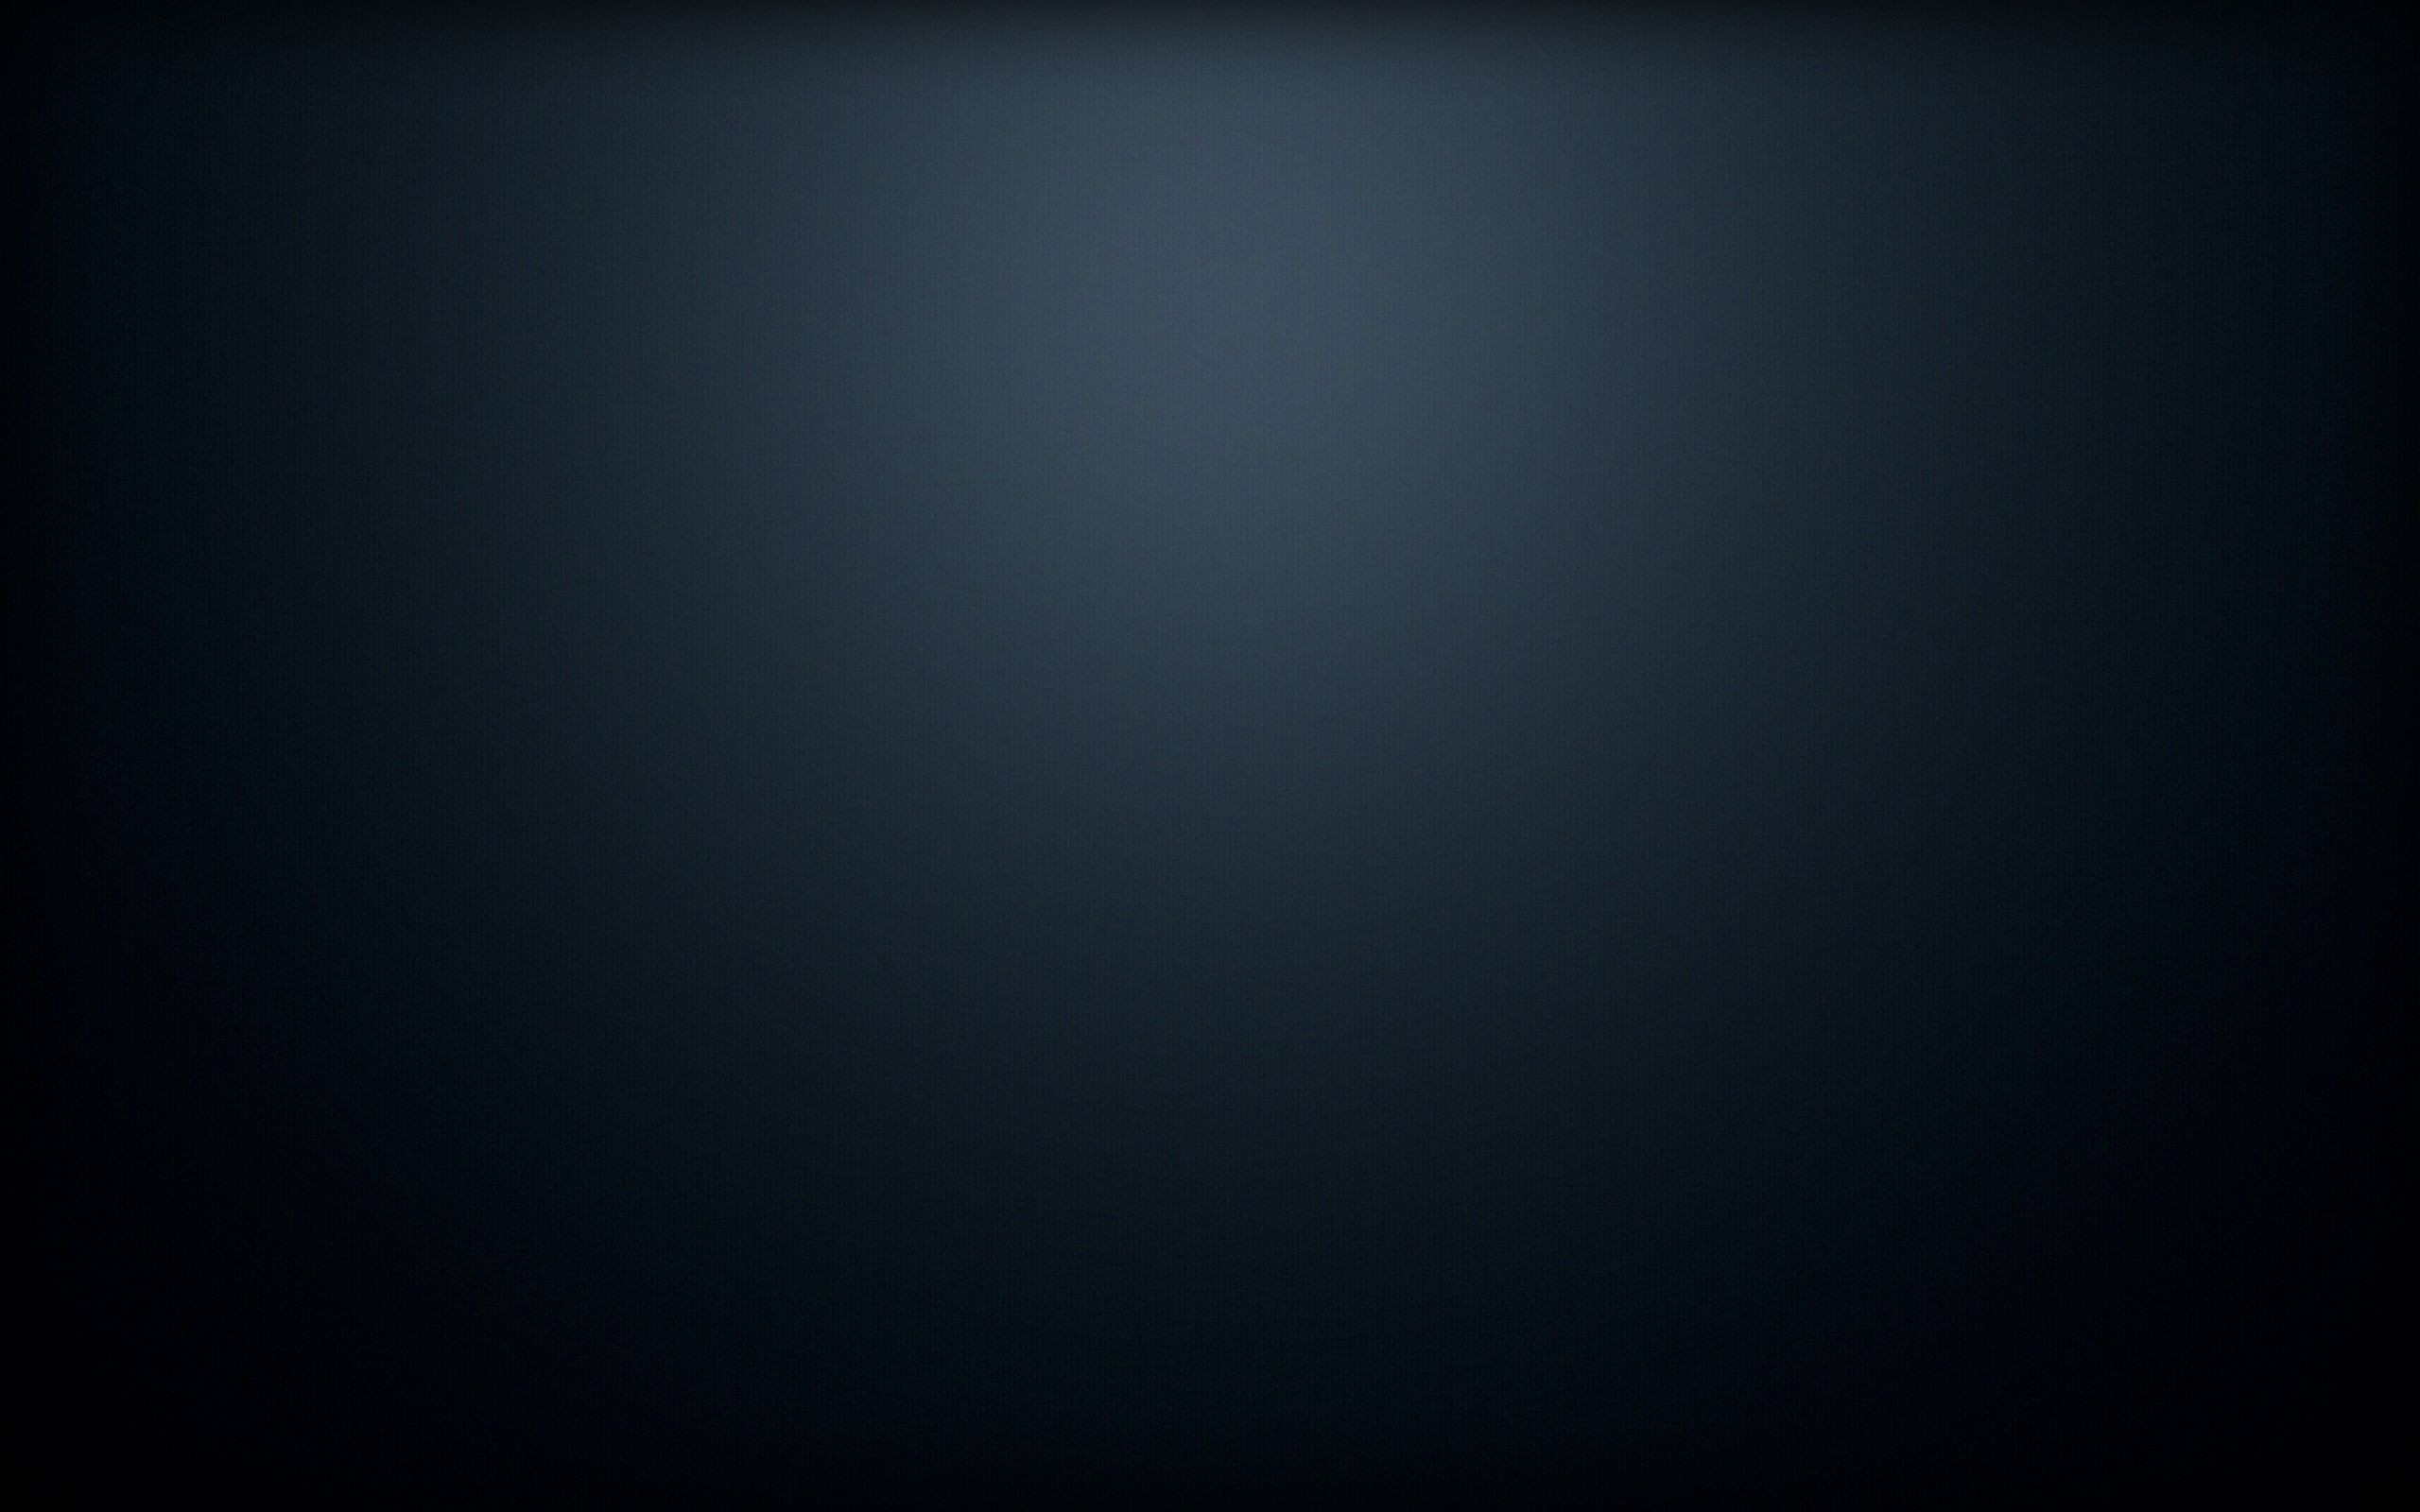 Download Black Texture Wallpaper x Full HD Wallpapers